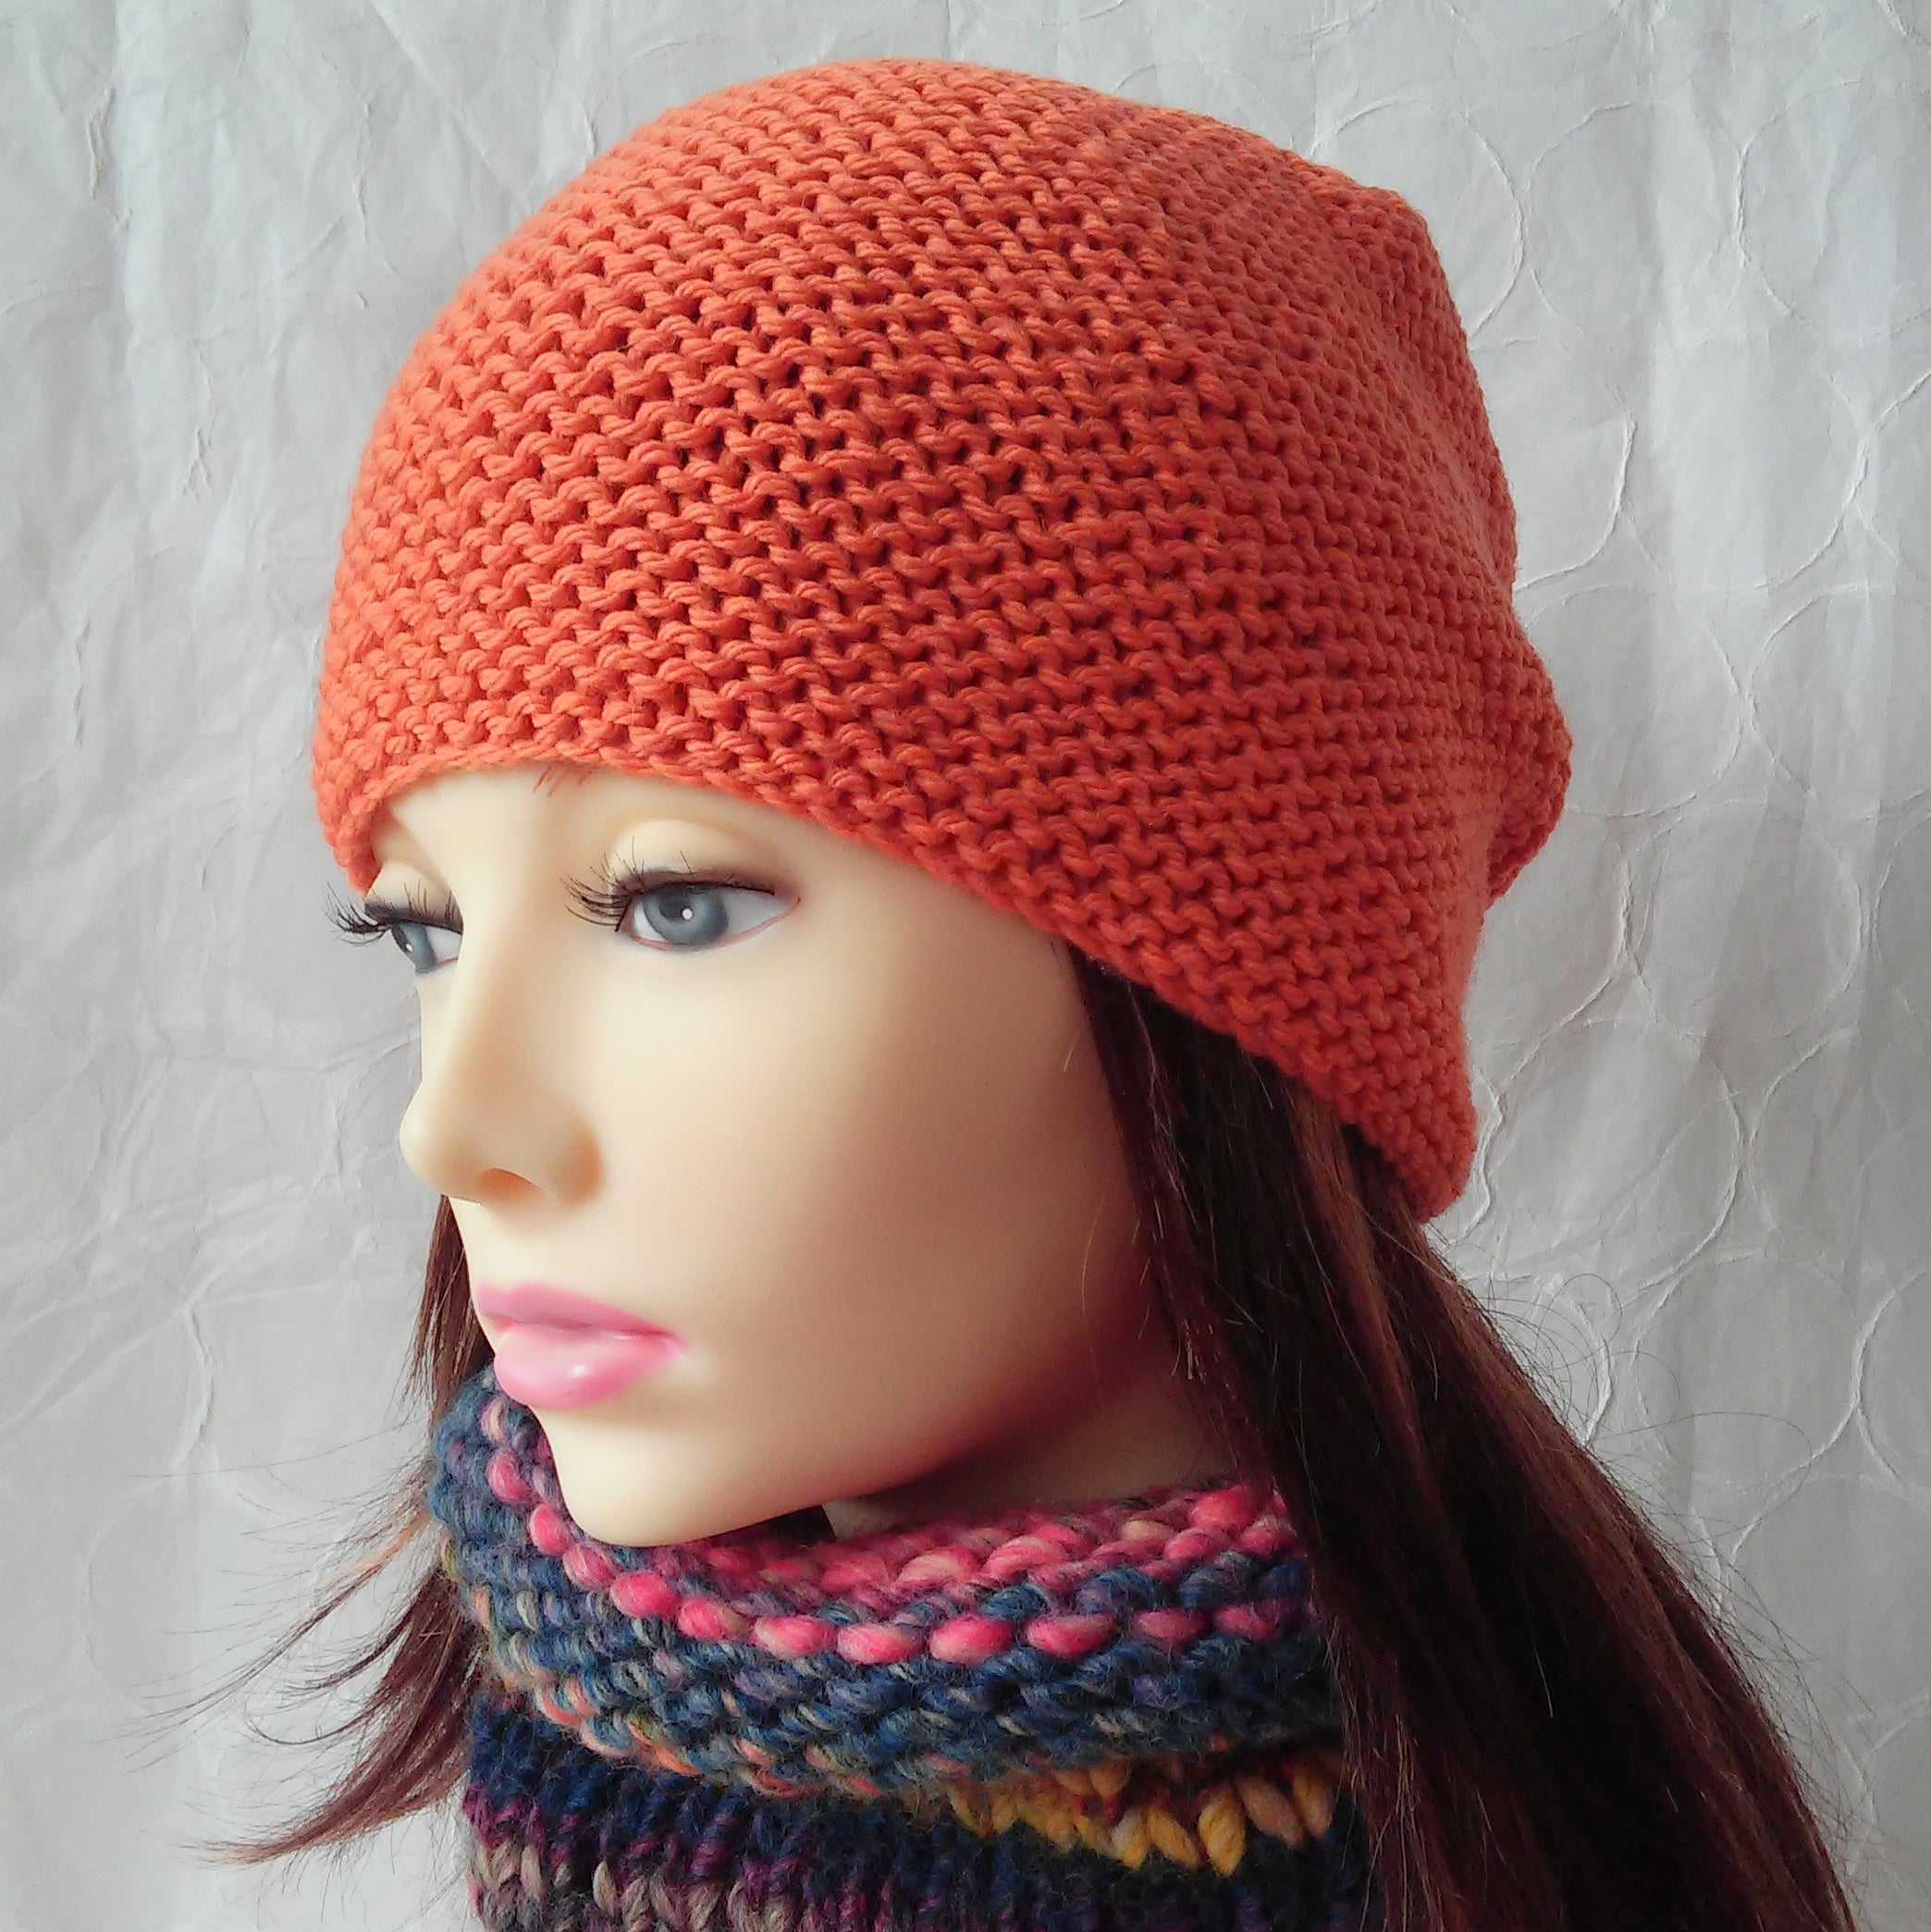 Beanie Knitting Pattern Slouchy Knit Hat Easy Winter Wool Toque Knit